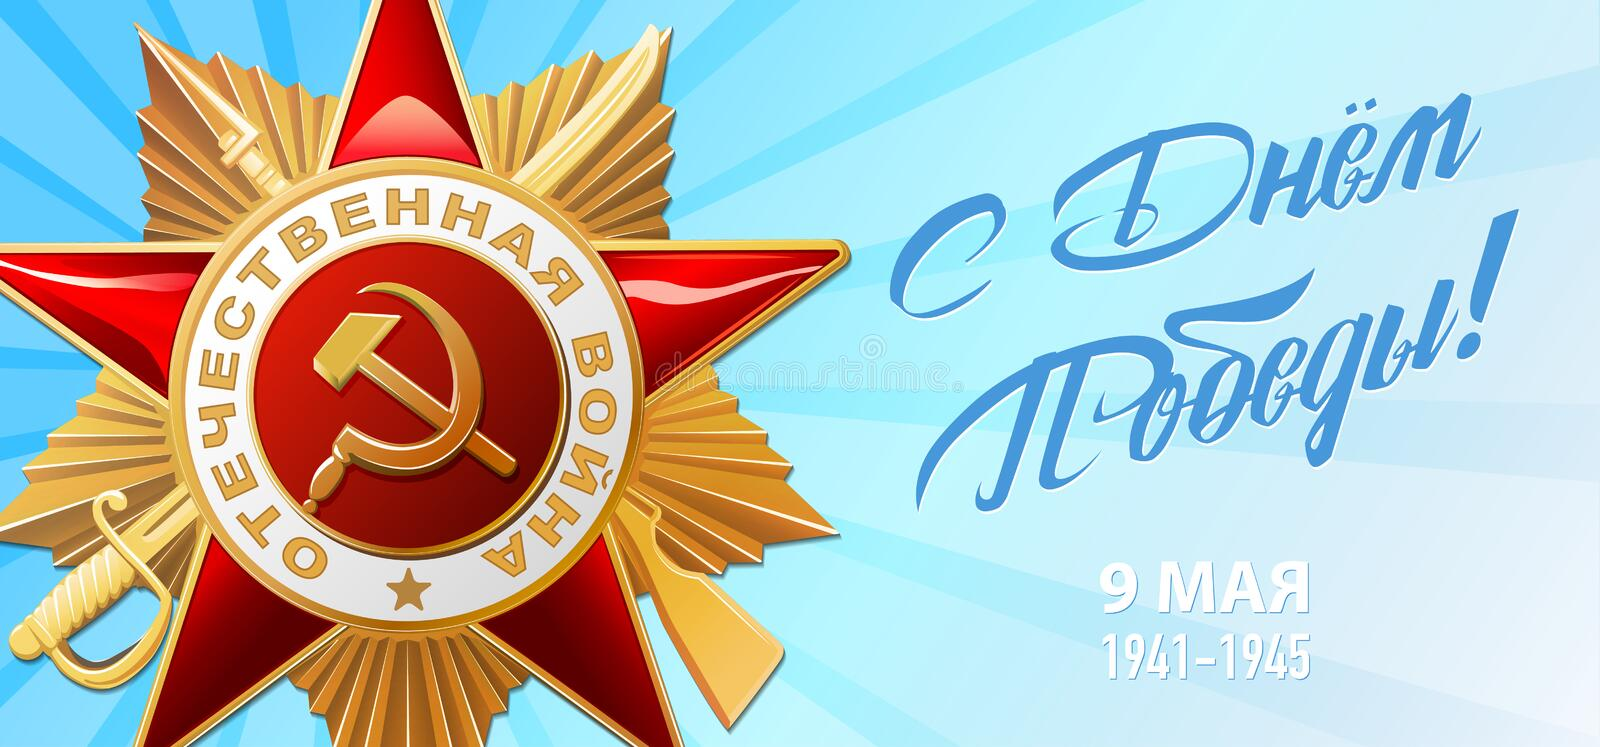 Victory Day. 9 May - Russian holiday. Translation Russian inscriptions: 9 May Victory Day. Template for Greeting Card, Poster and Banner. Blue background stock photography